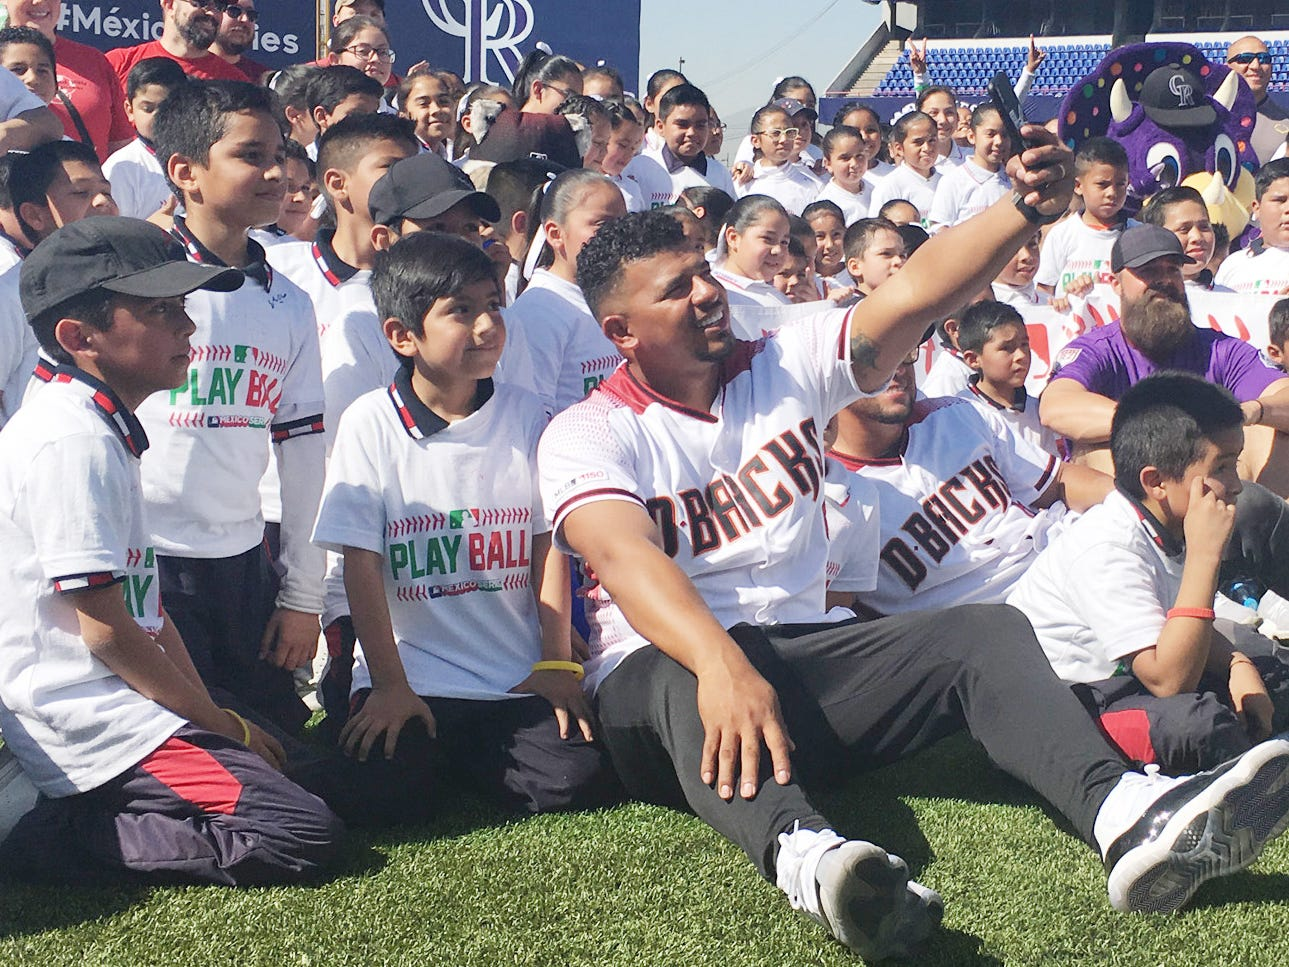 Players from the Arizona Diamondbacks and the Colorado Rockies pose for photos with children who came to meet Major League players during spring training games in Monterrey, Mexico.